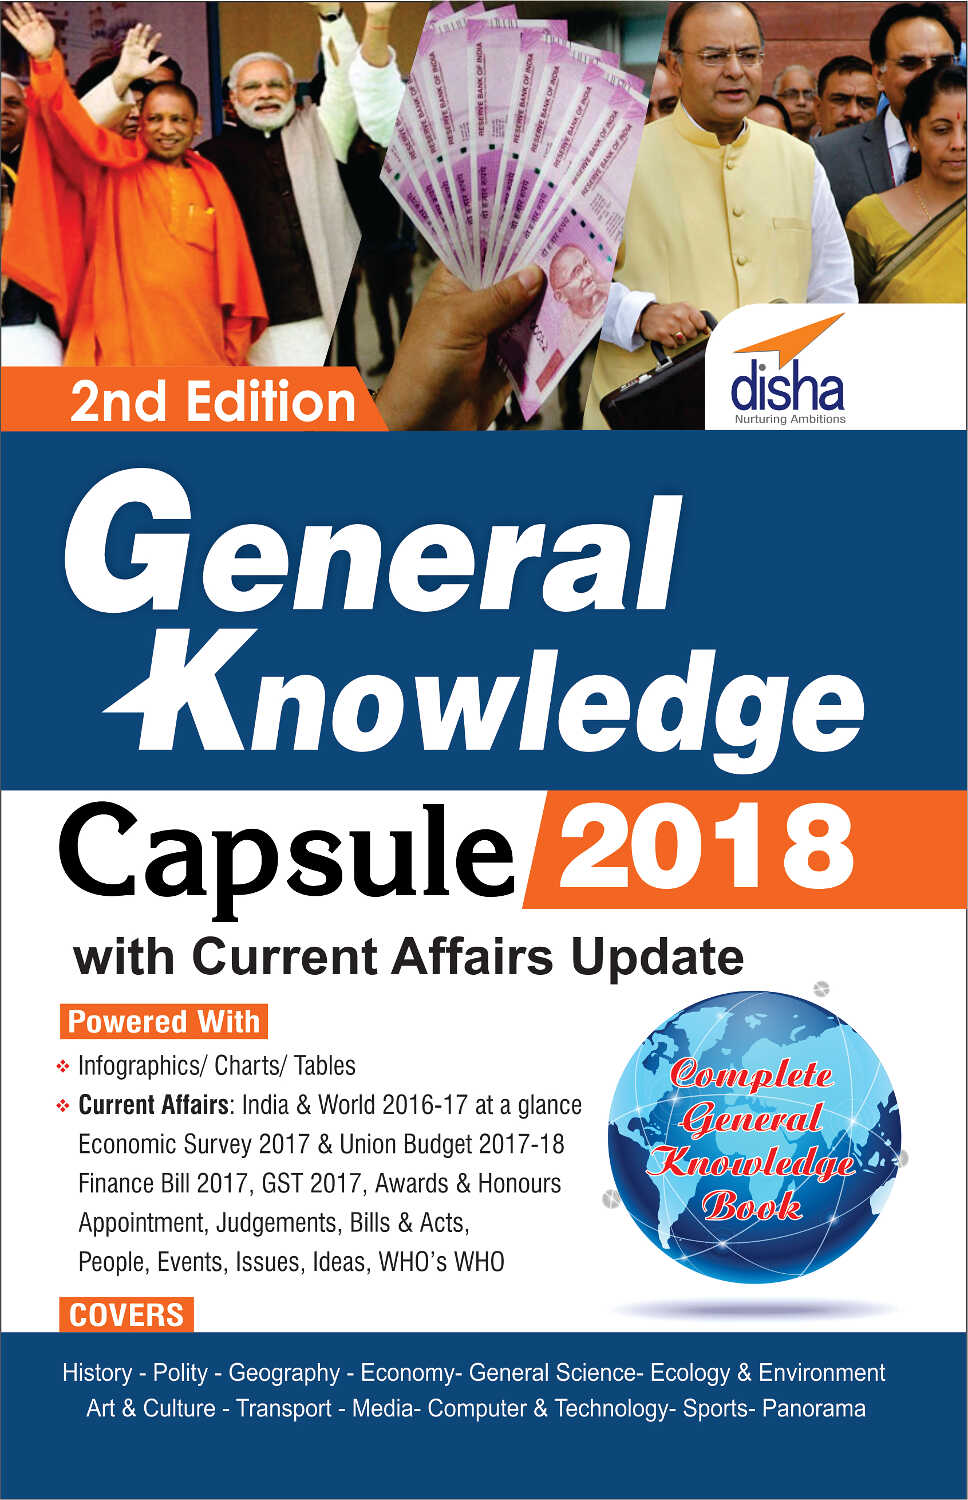 Disha General Knowledge 2018 Capsule with Current Affairs Update 2nd Edition